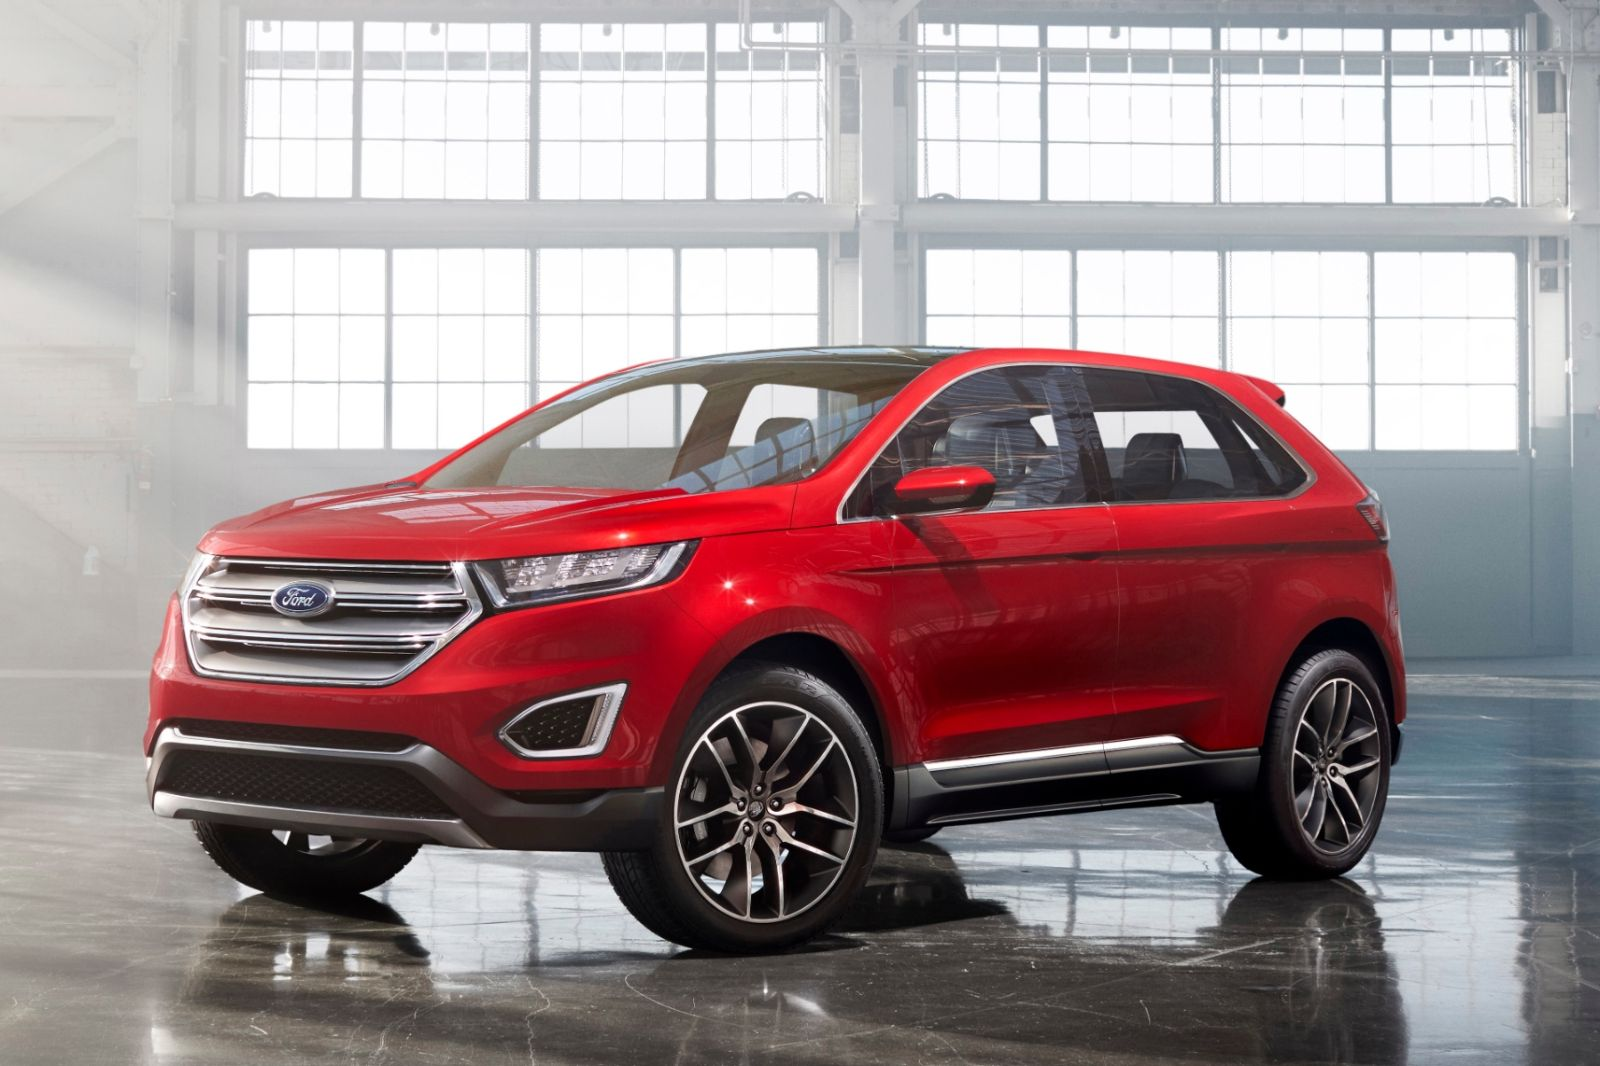 le ford edge concept annonce un suv au style us en europe. Black Bedroom Furniture Sets. Home Design Ideas